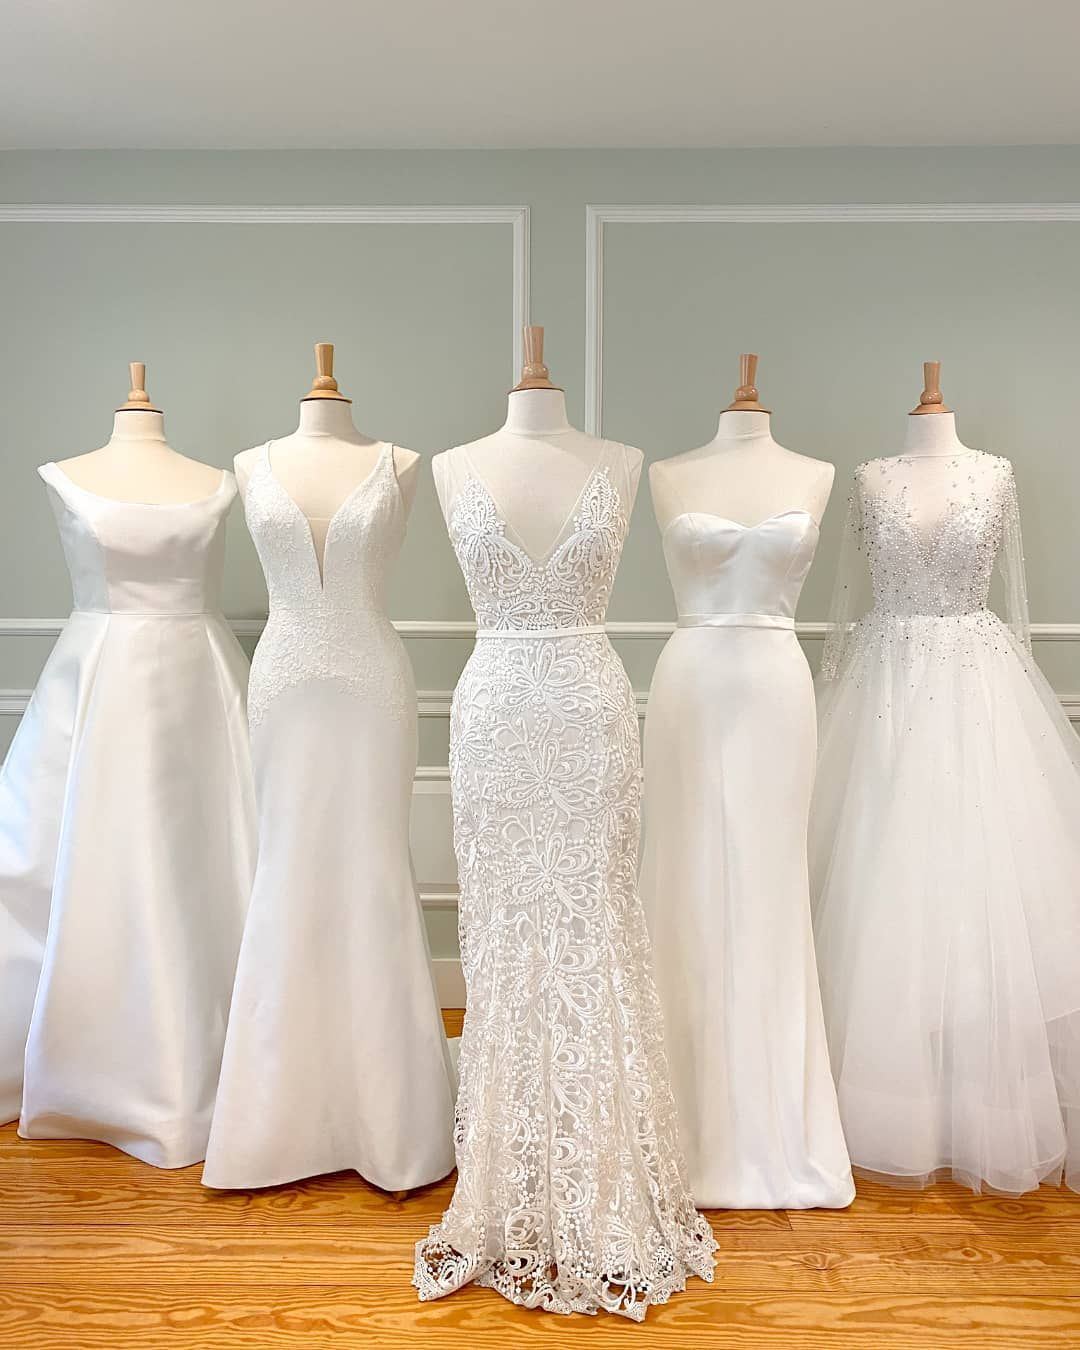 New Addition Immediate Sale Wedding Dresses In 2020 Wedding Dresses For Sale Wedding Dresses Dresses